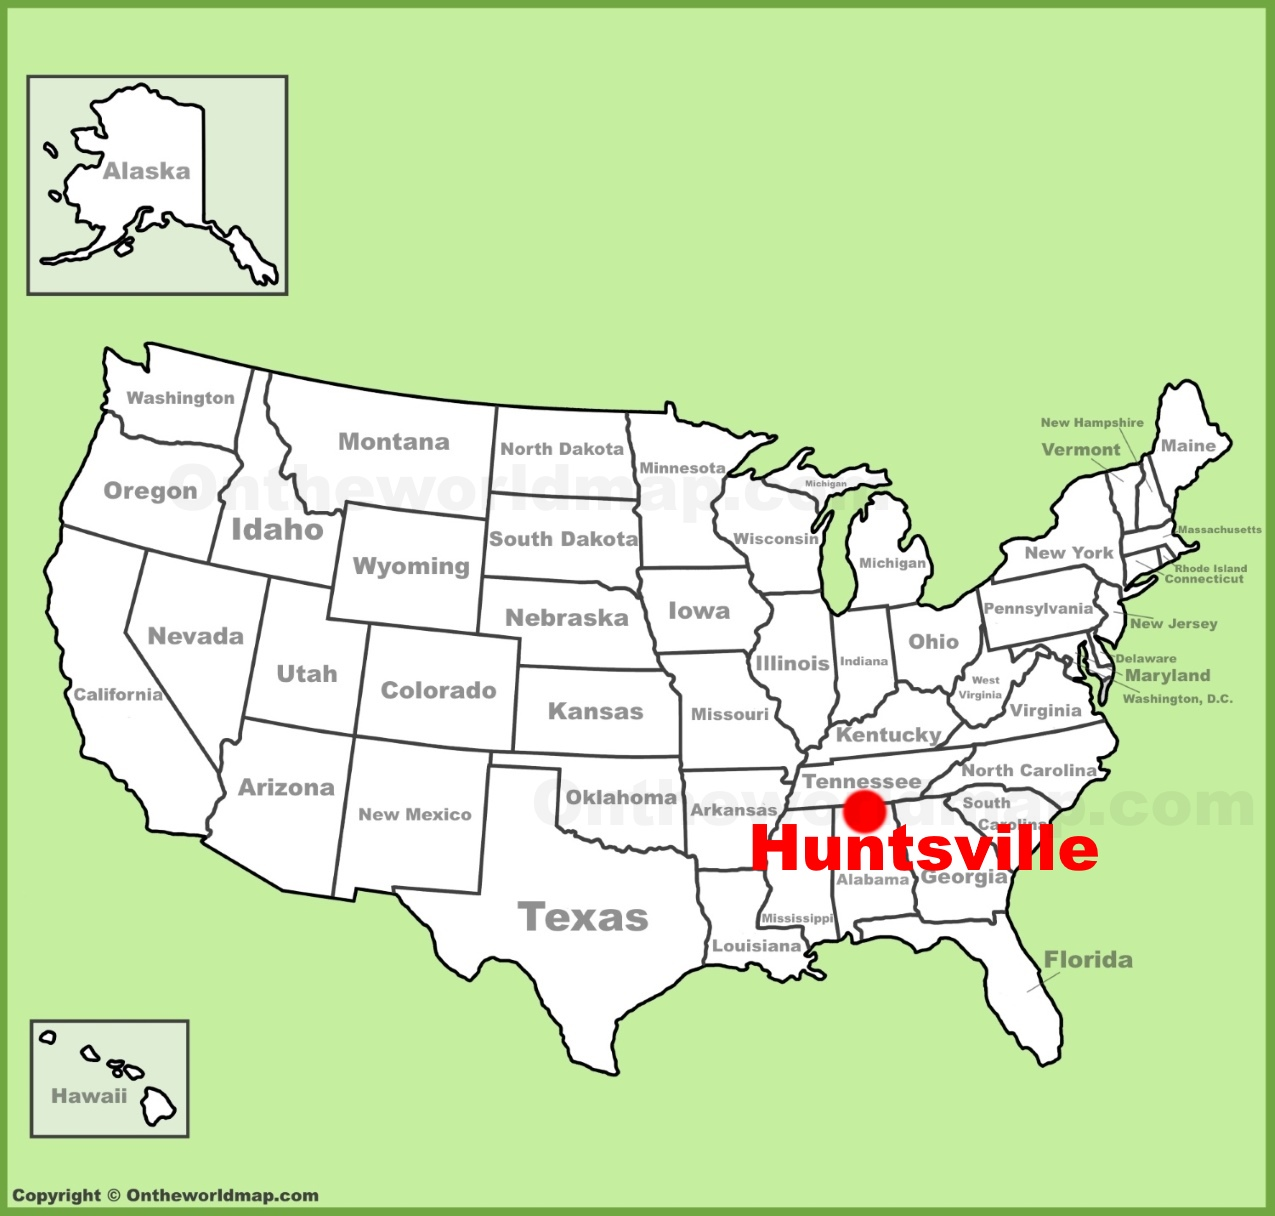 Huntsville location on the US Map